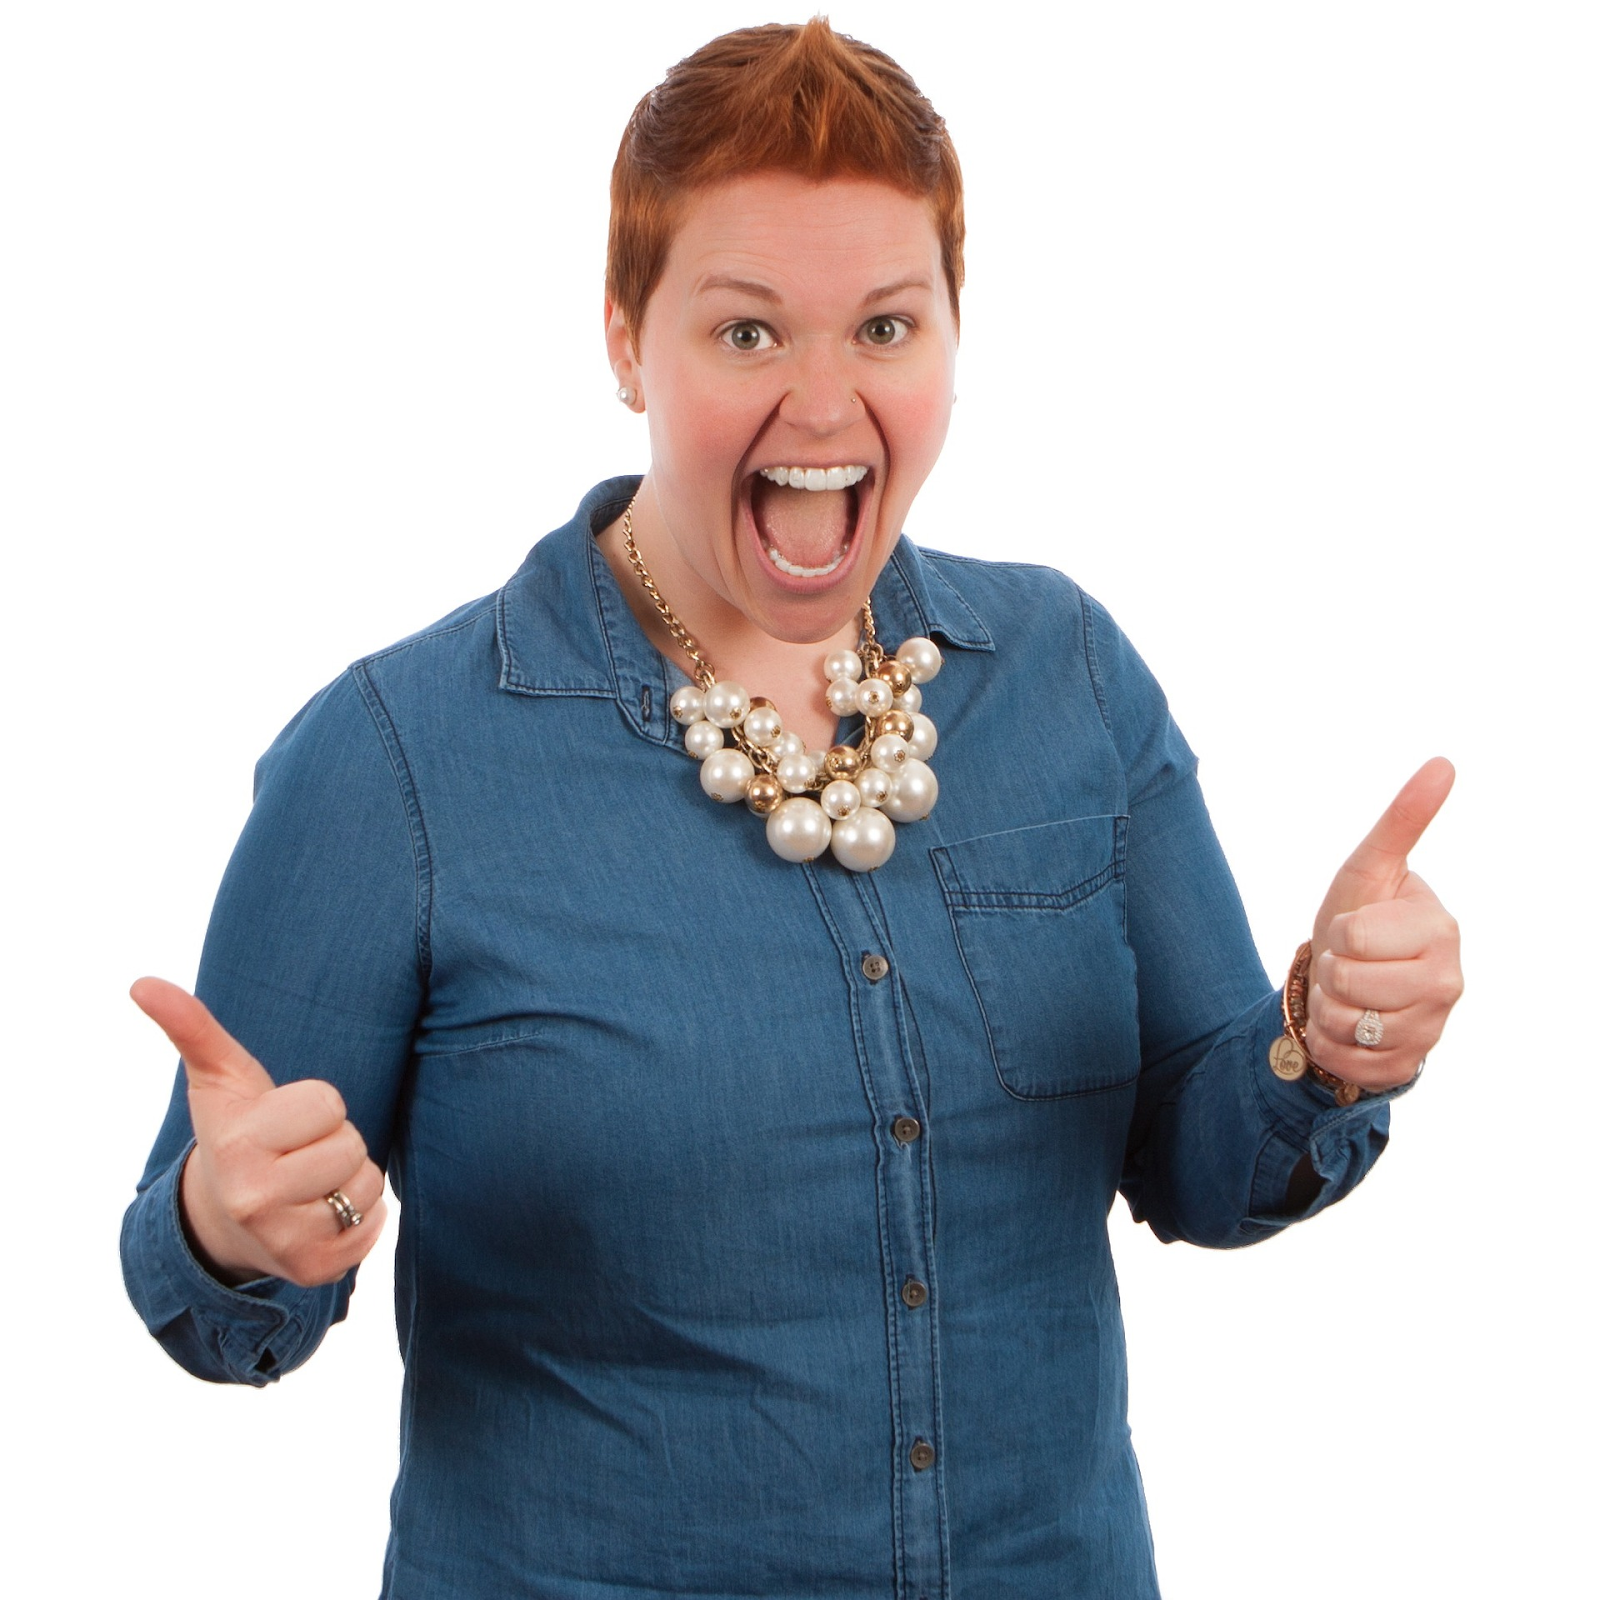 ecstatic woman with red hair giving two thumbs-up